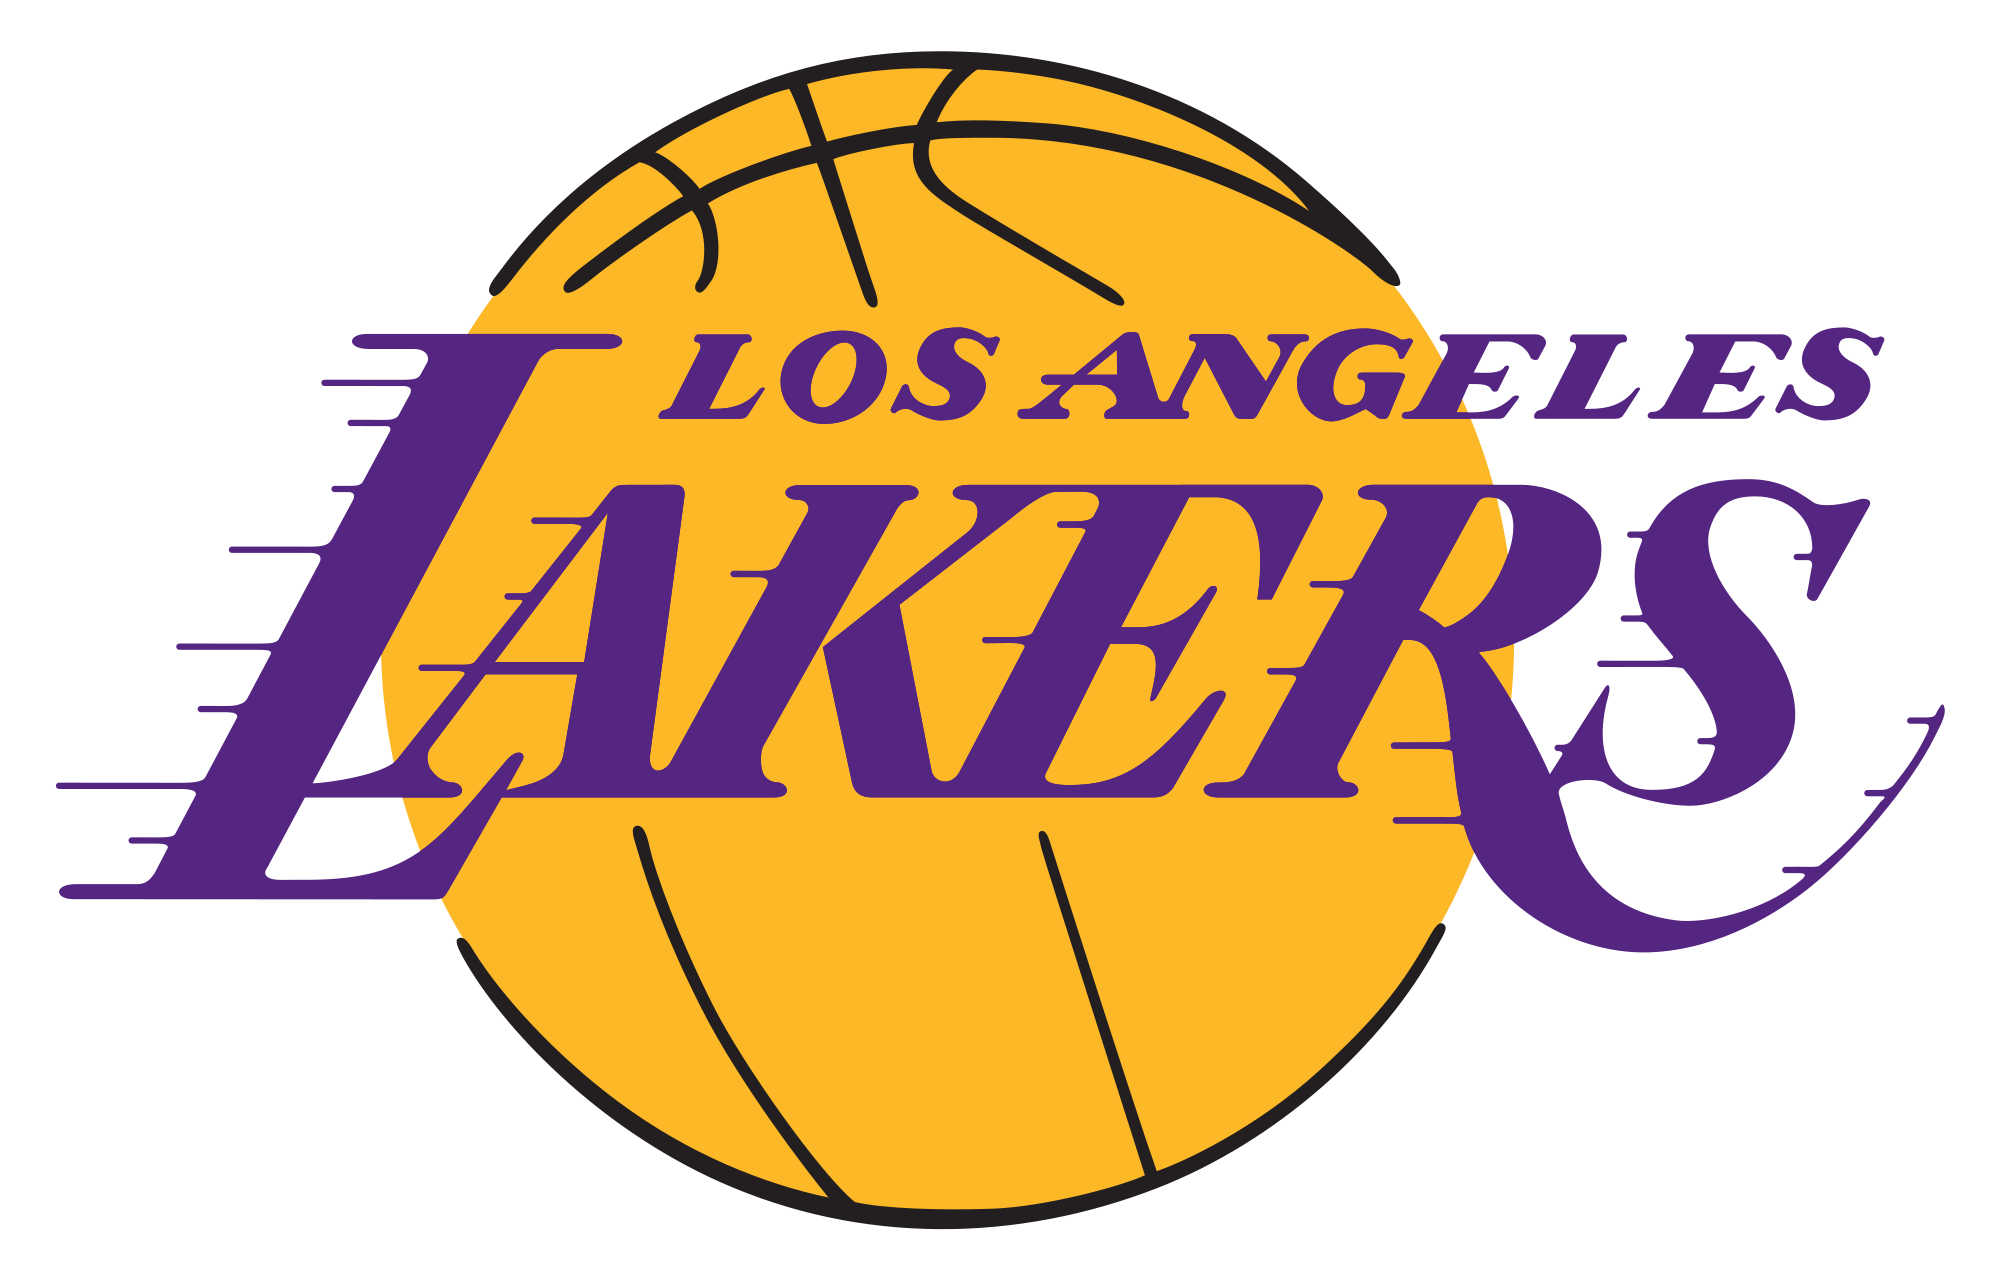 Los Angeles Lakers Logo Transparent Png Stickpng